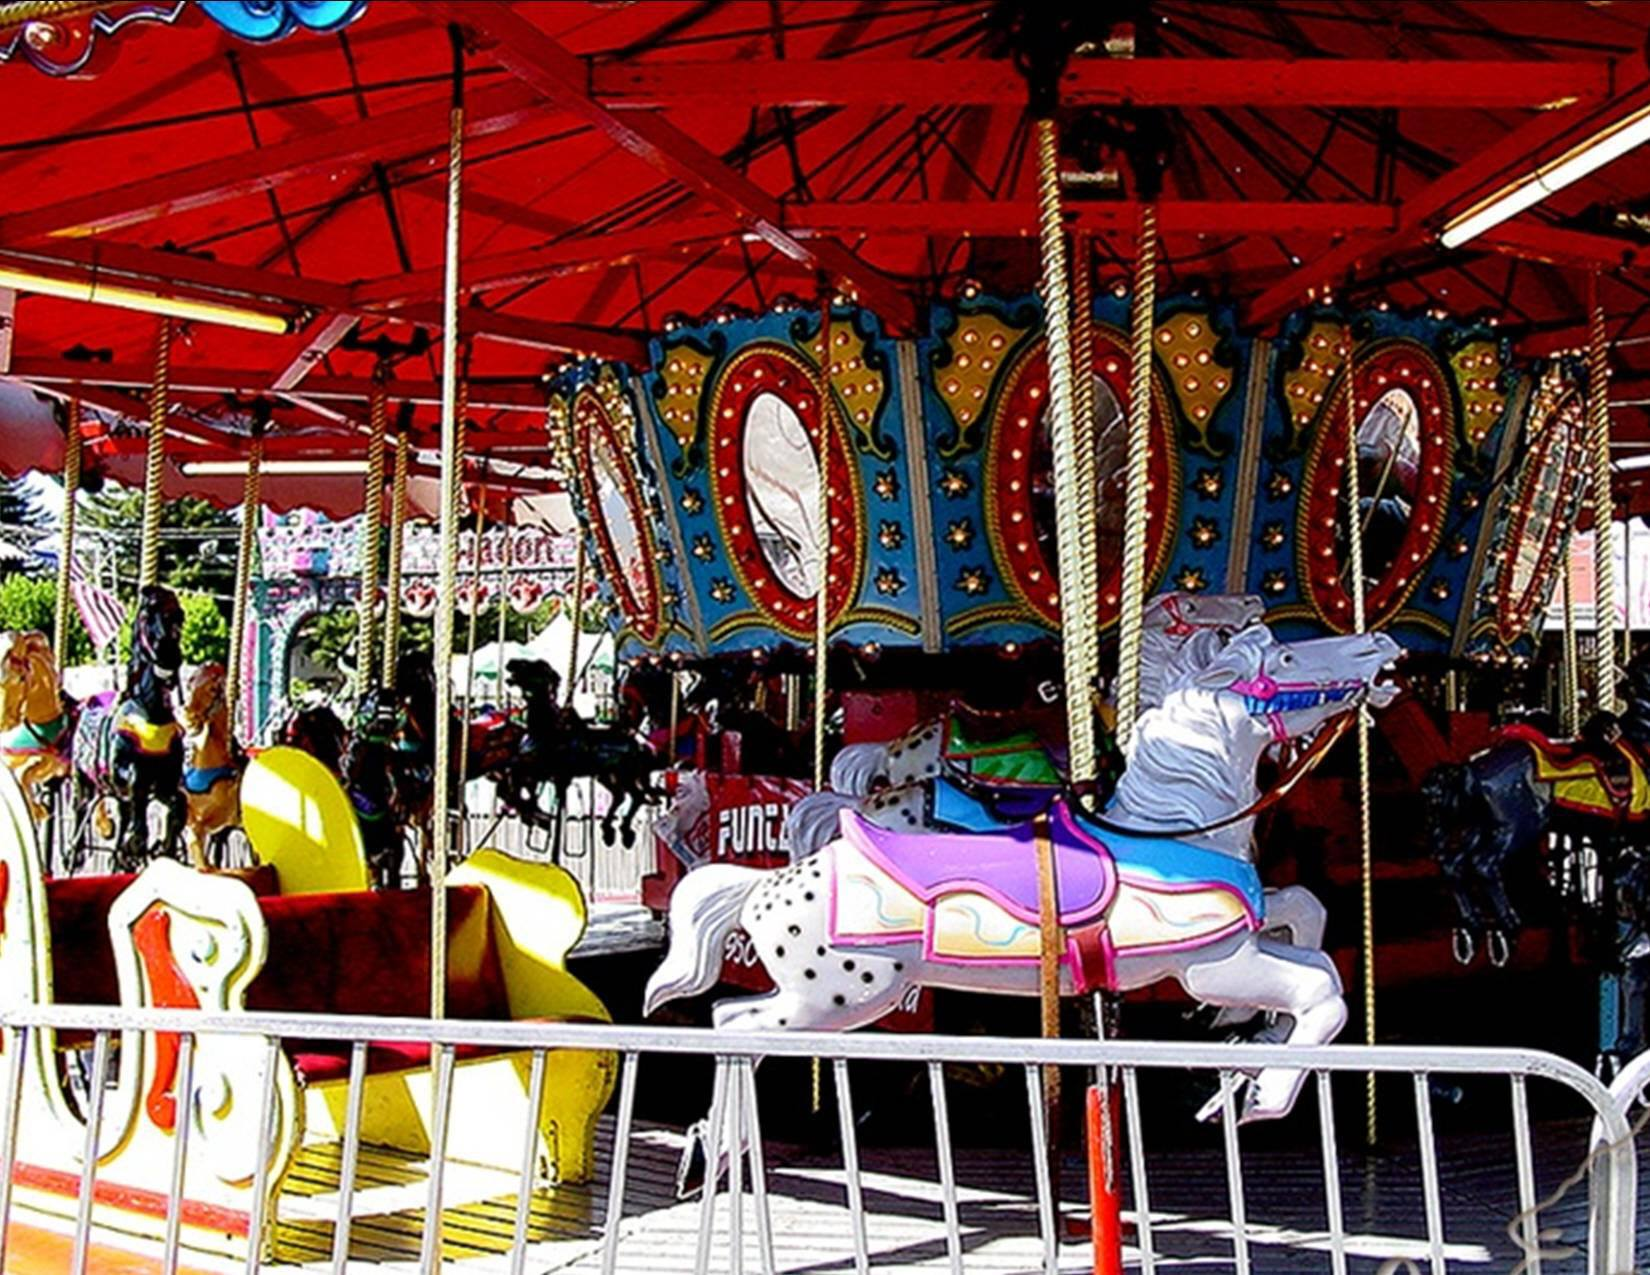 Rides at Fairgrounds in Shasta County